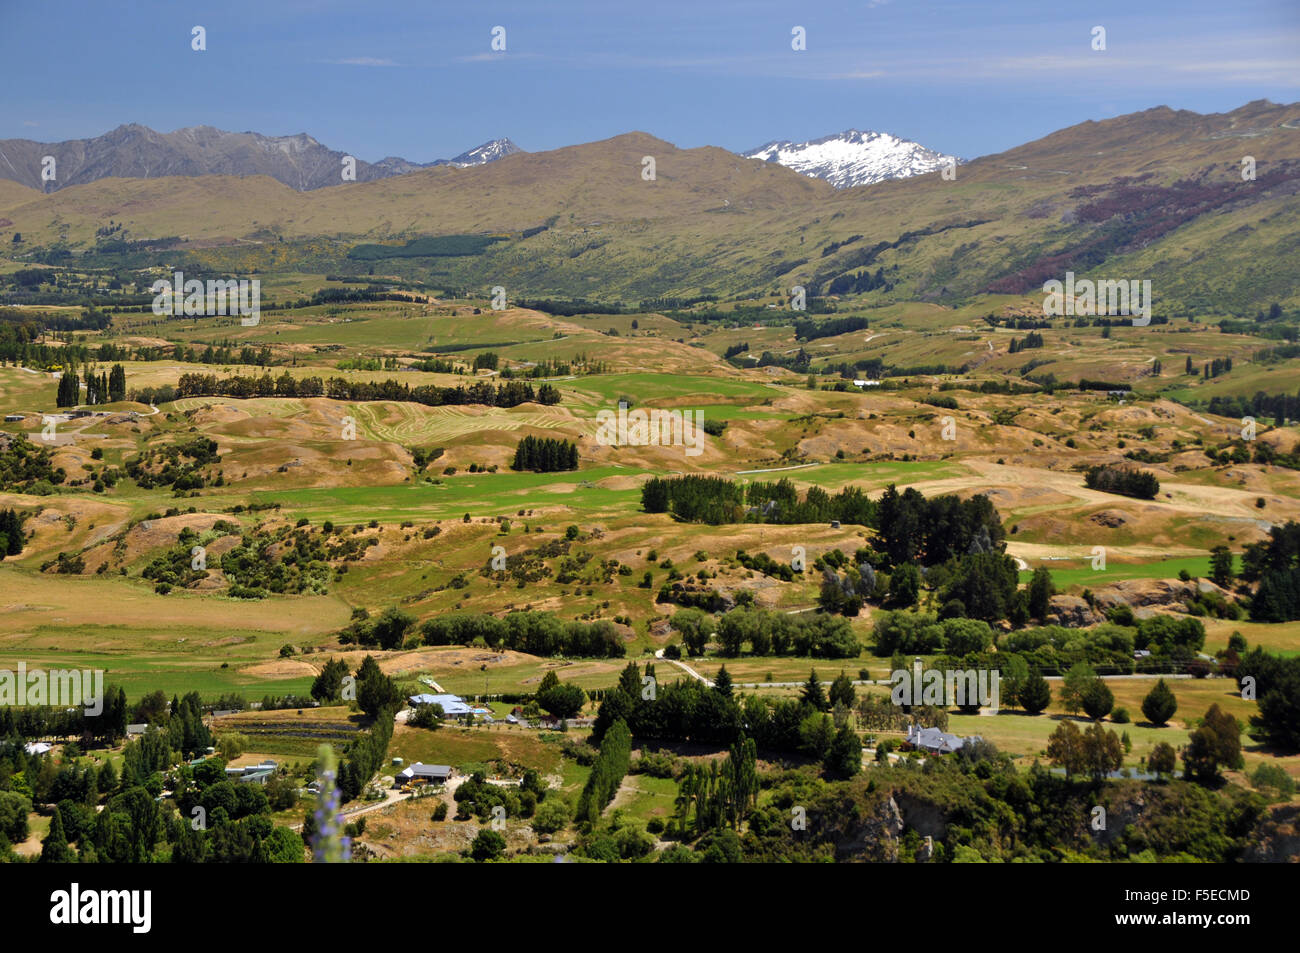 View of countryside from Alpine road, near Queenstown, New Zealand - Stock Image